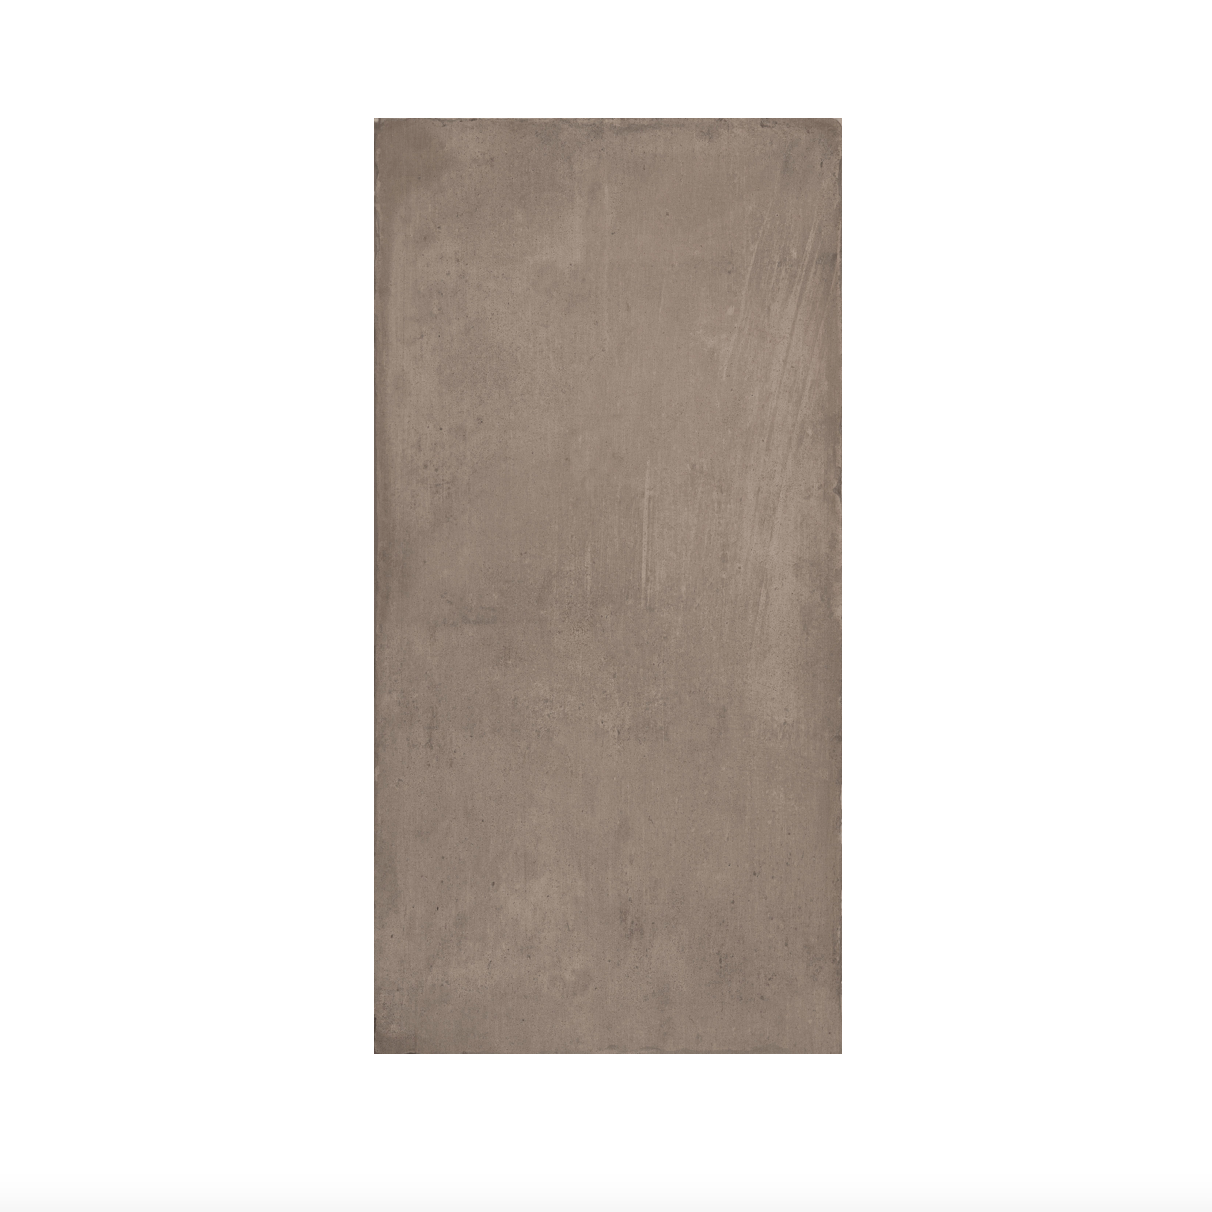 Iris Desire Brown Rectangular Floor Tile